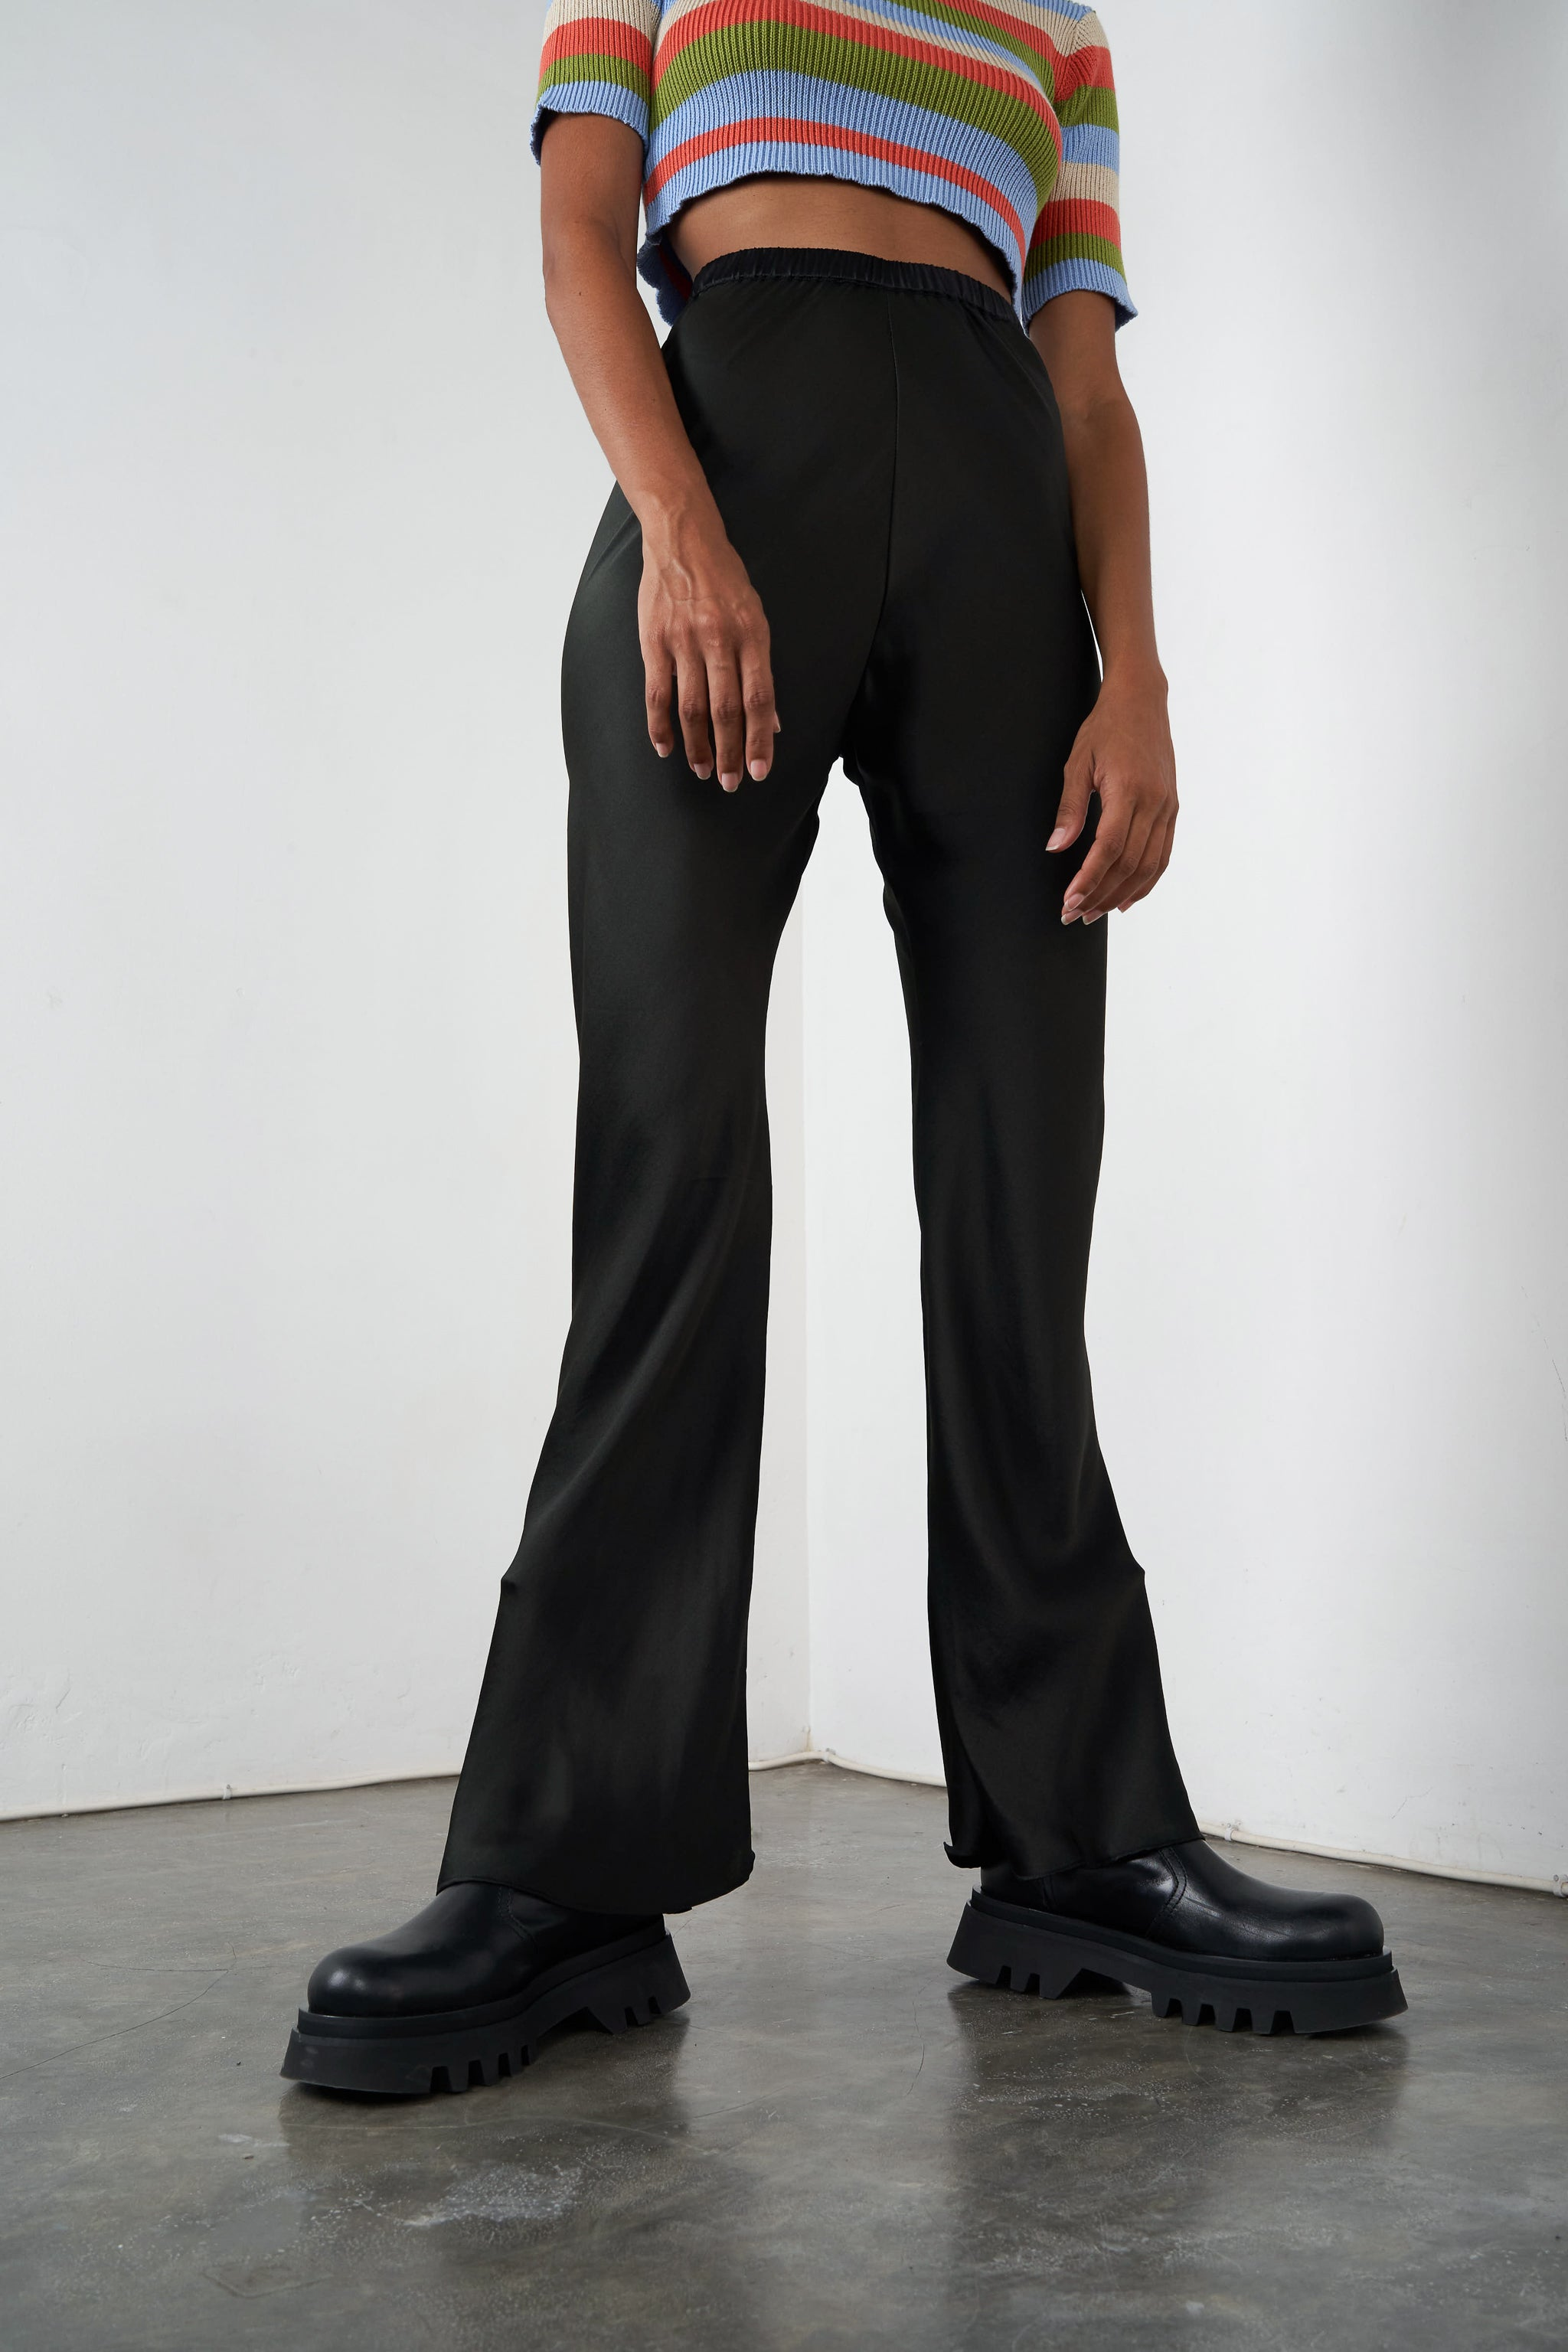 Arthur Apparel AW20 Womenswear Australian Fashion Silk Flared Trouser Black